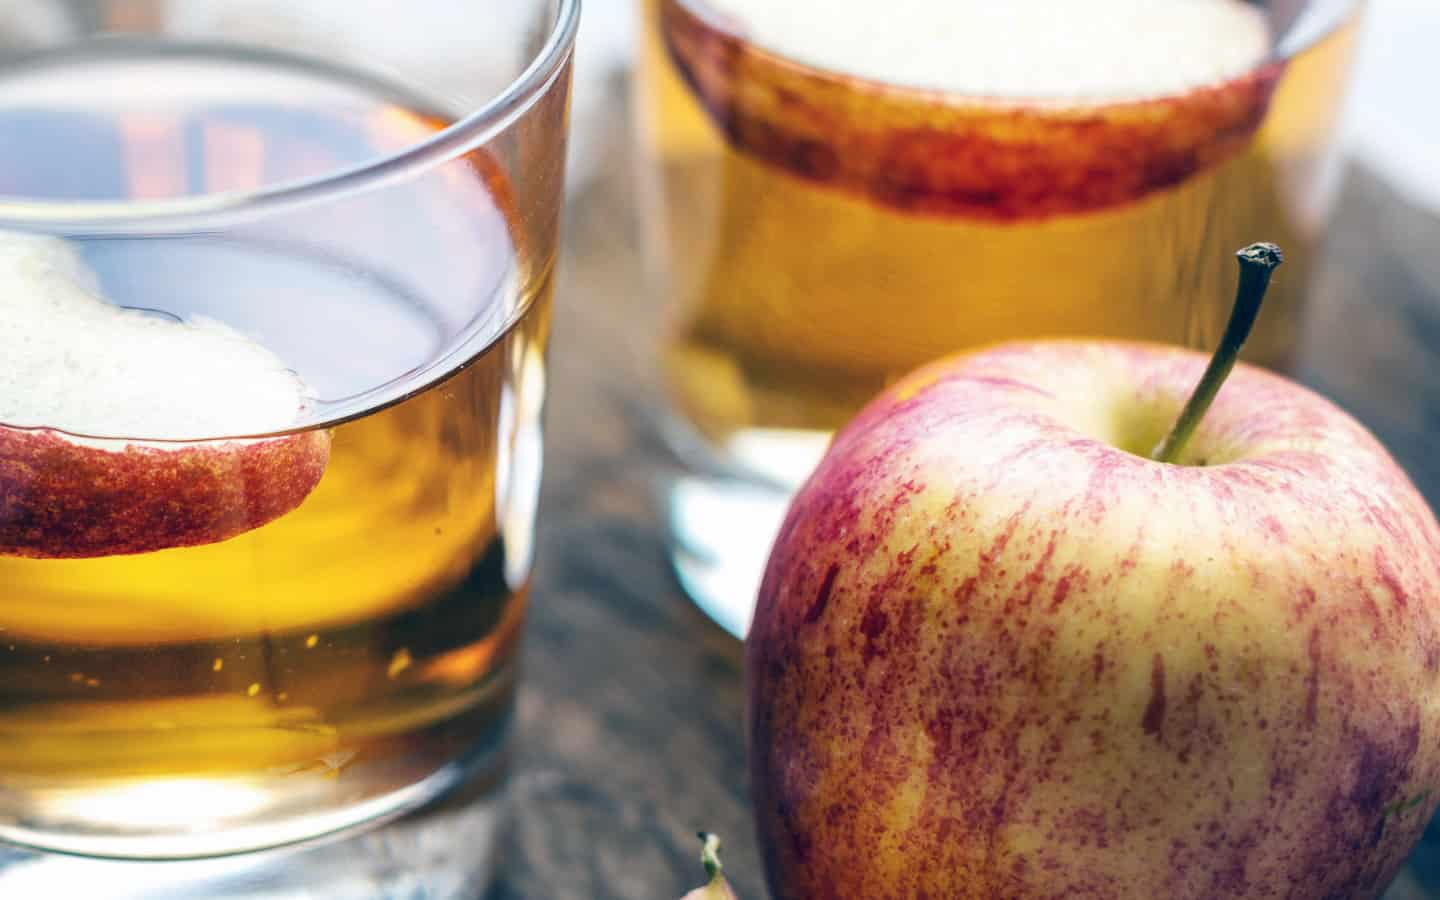 The best method to drink apple cider vinegar for weight loss